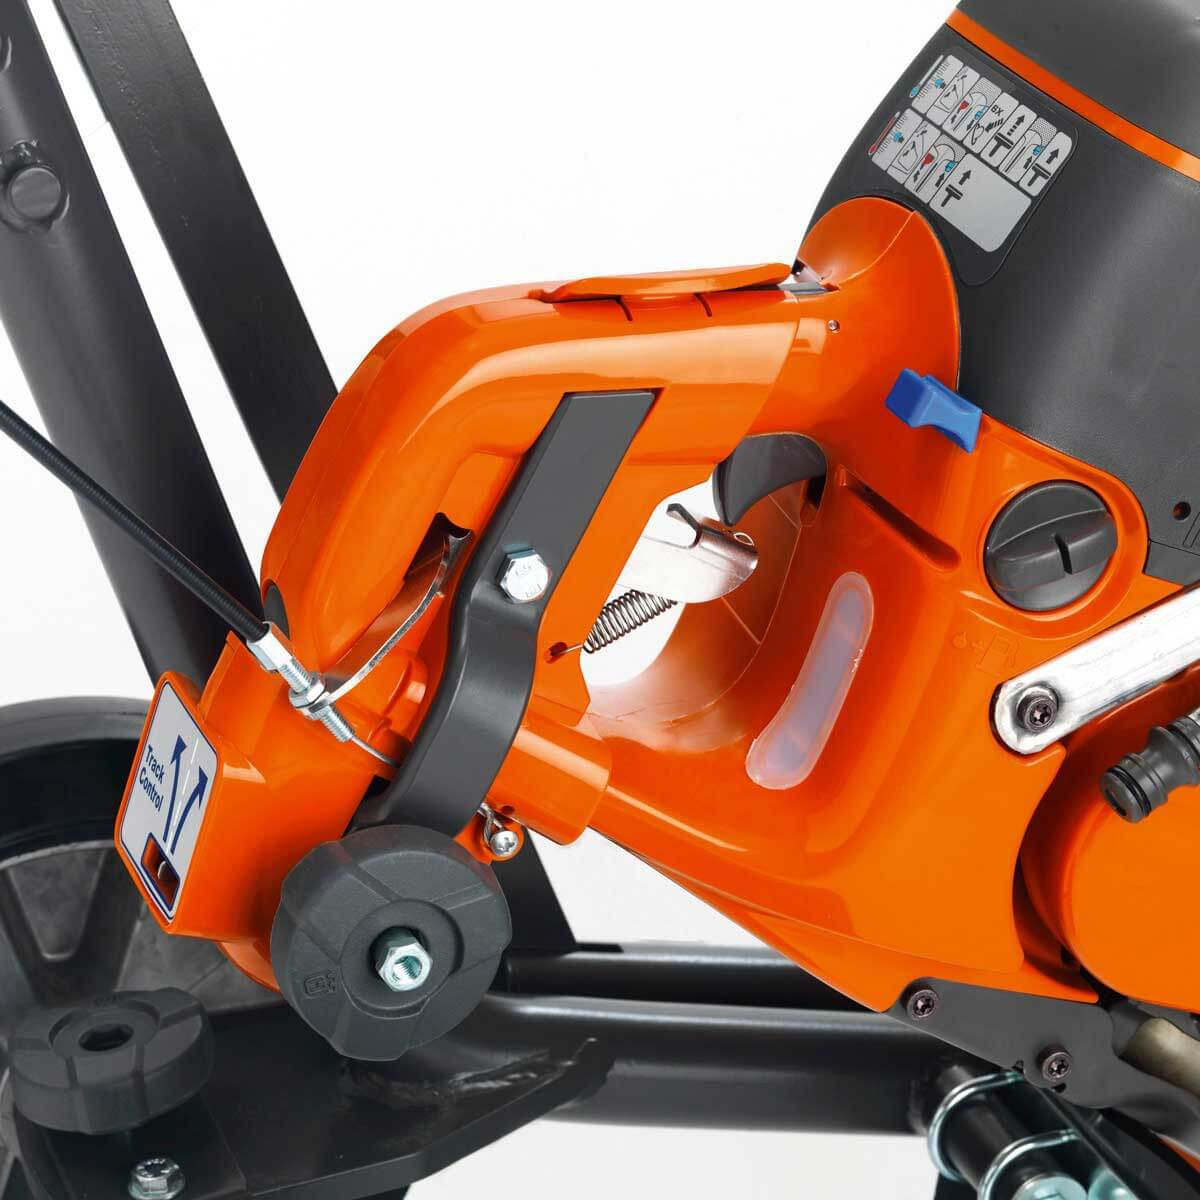 Husqvarna saw Cutting kart trottle